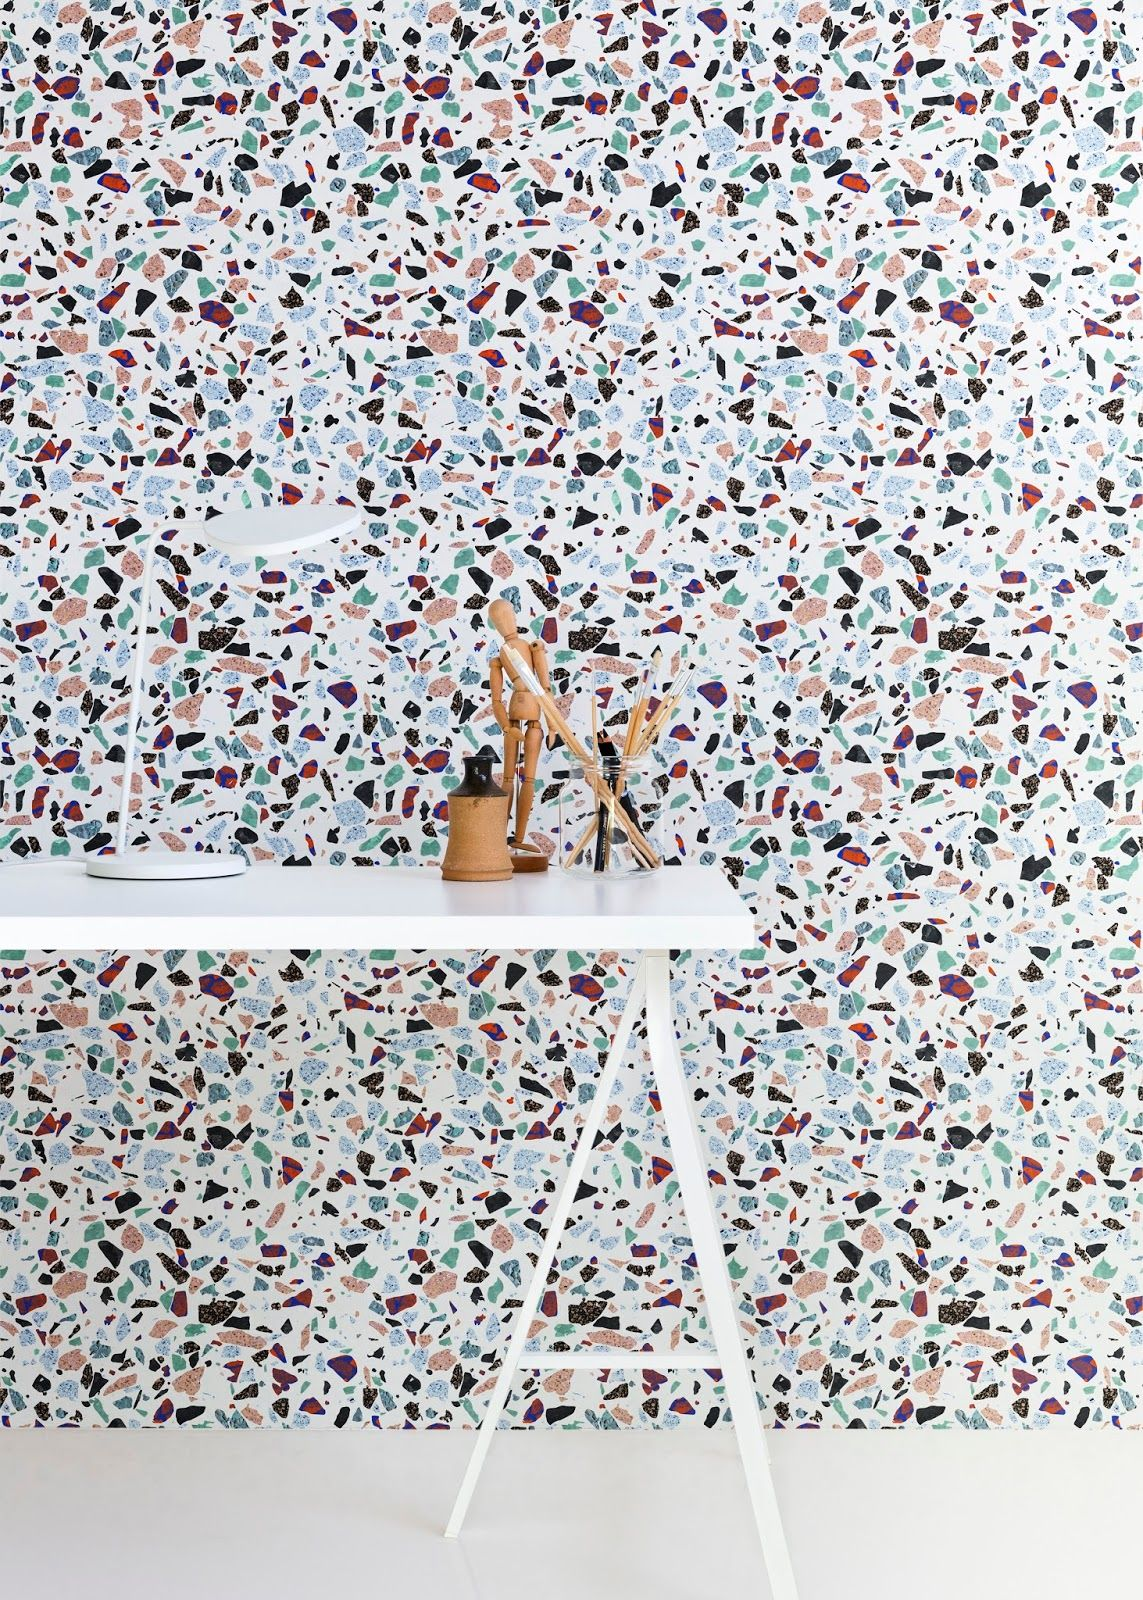 Wallpaper by Nothing can go wrong via Little Helsinki